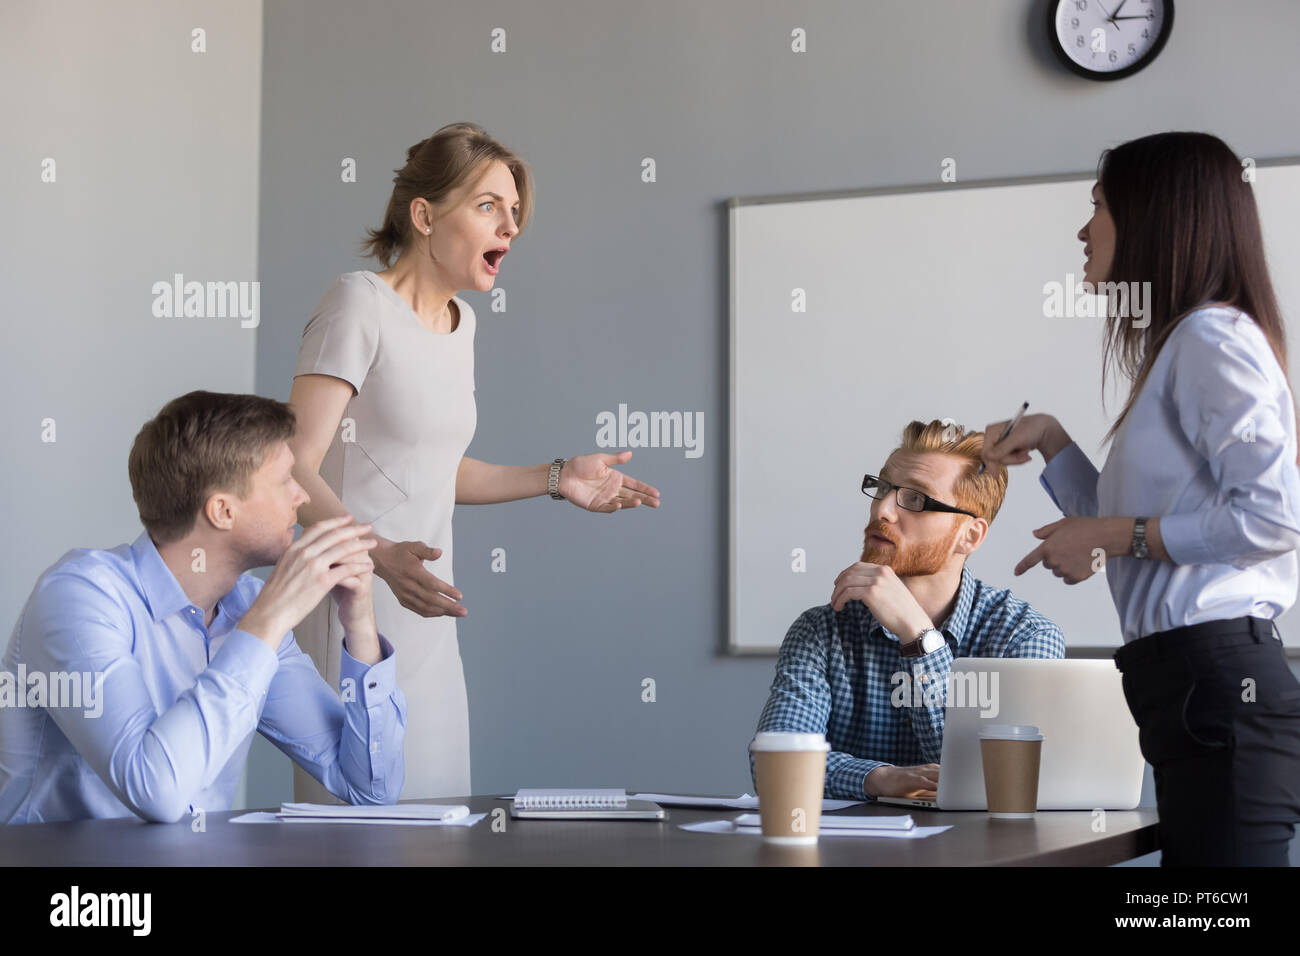 Businesswomen colleagues disputing at corporate office meeting,  - Stock Image